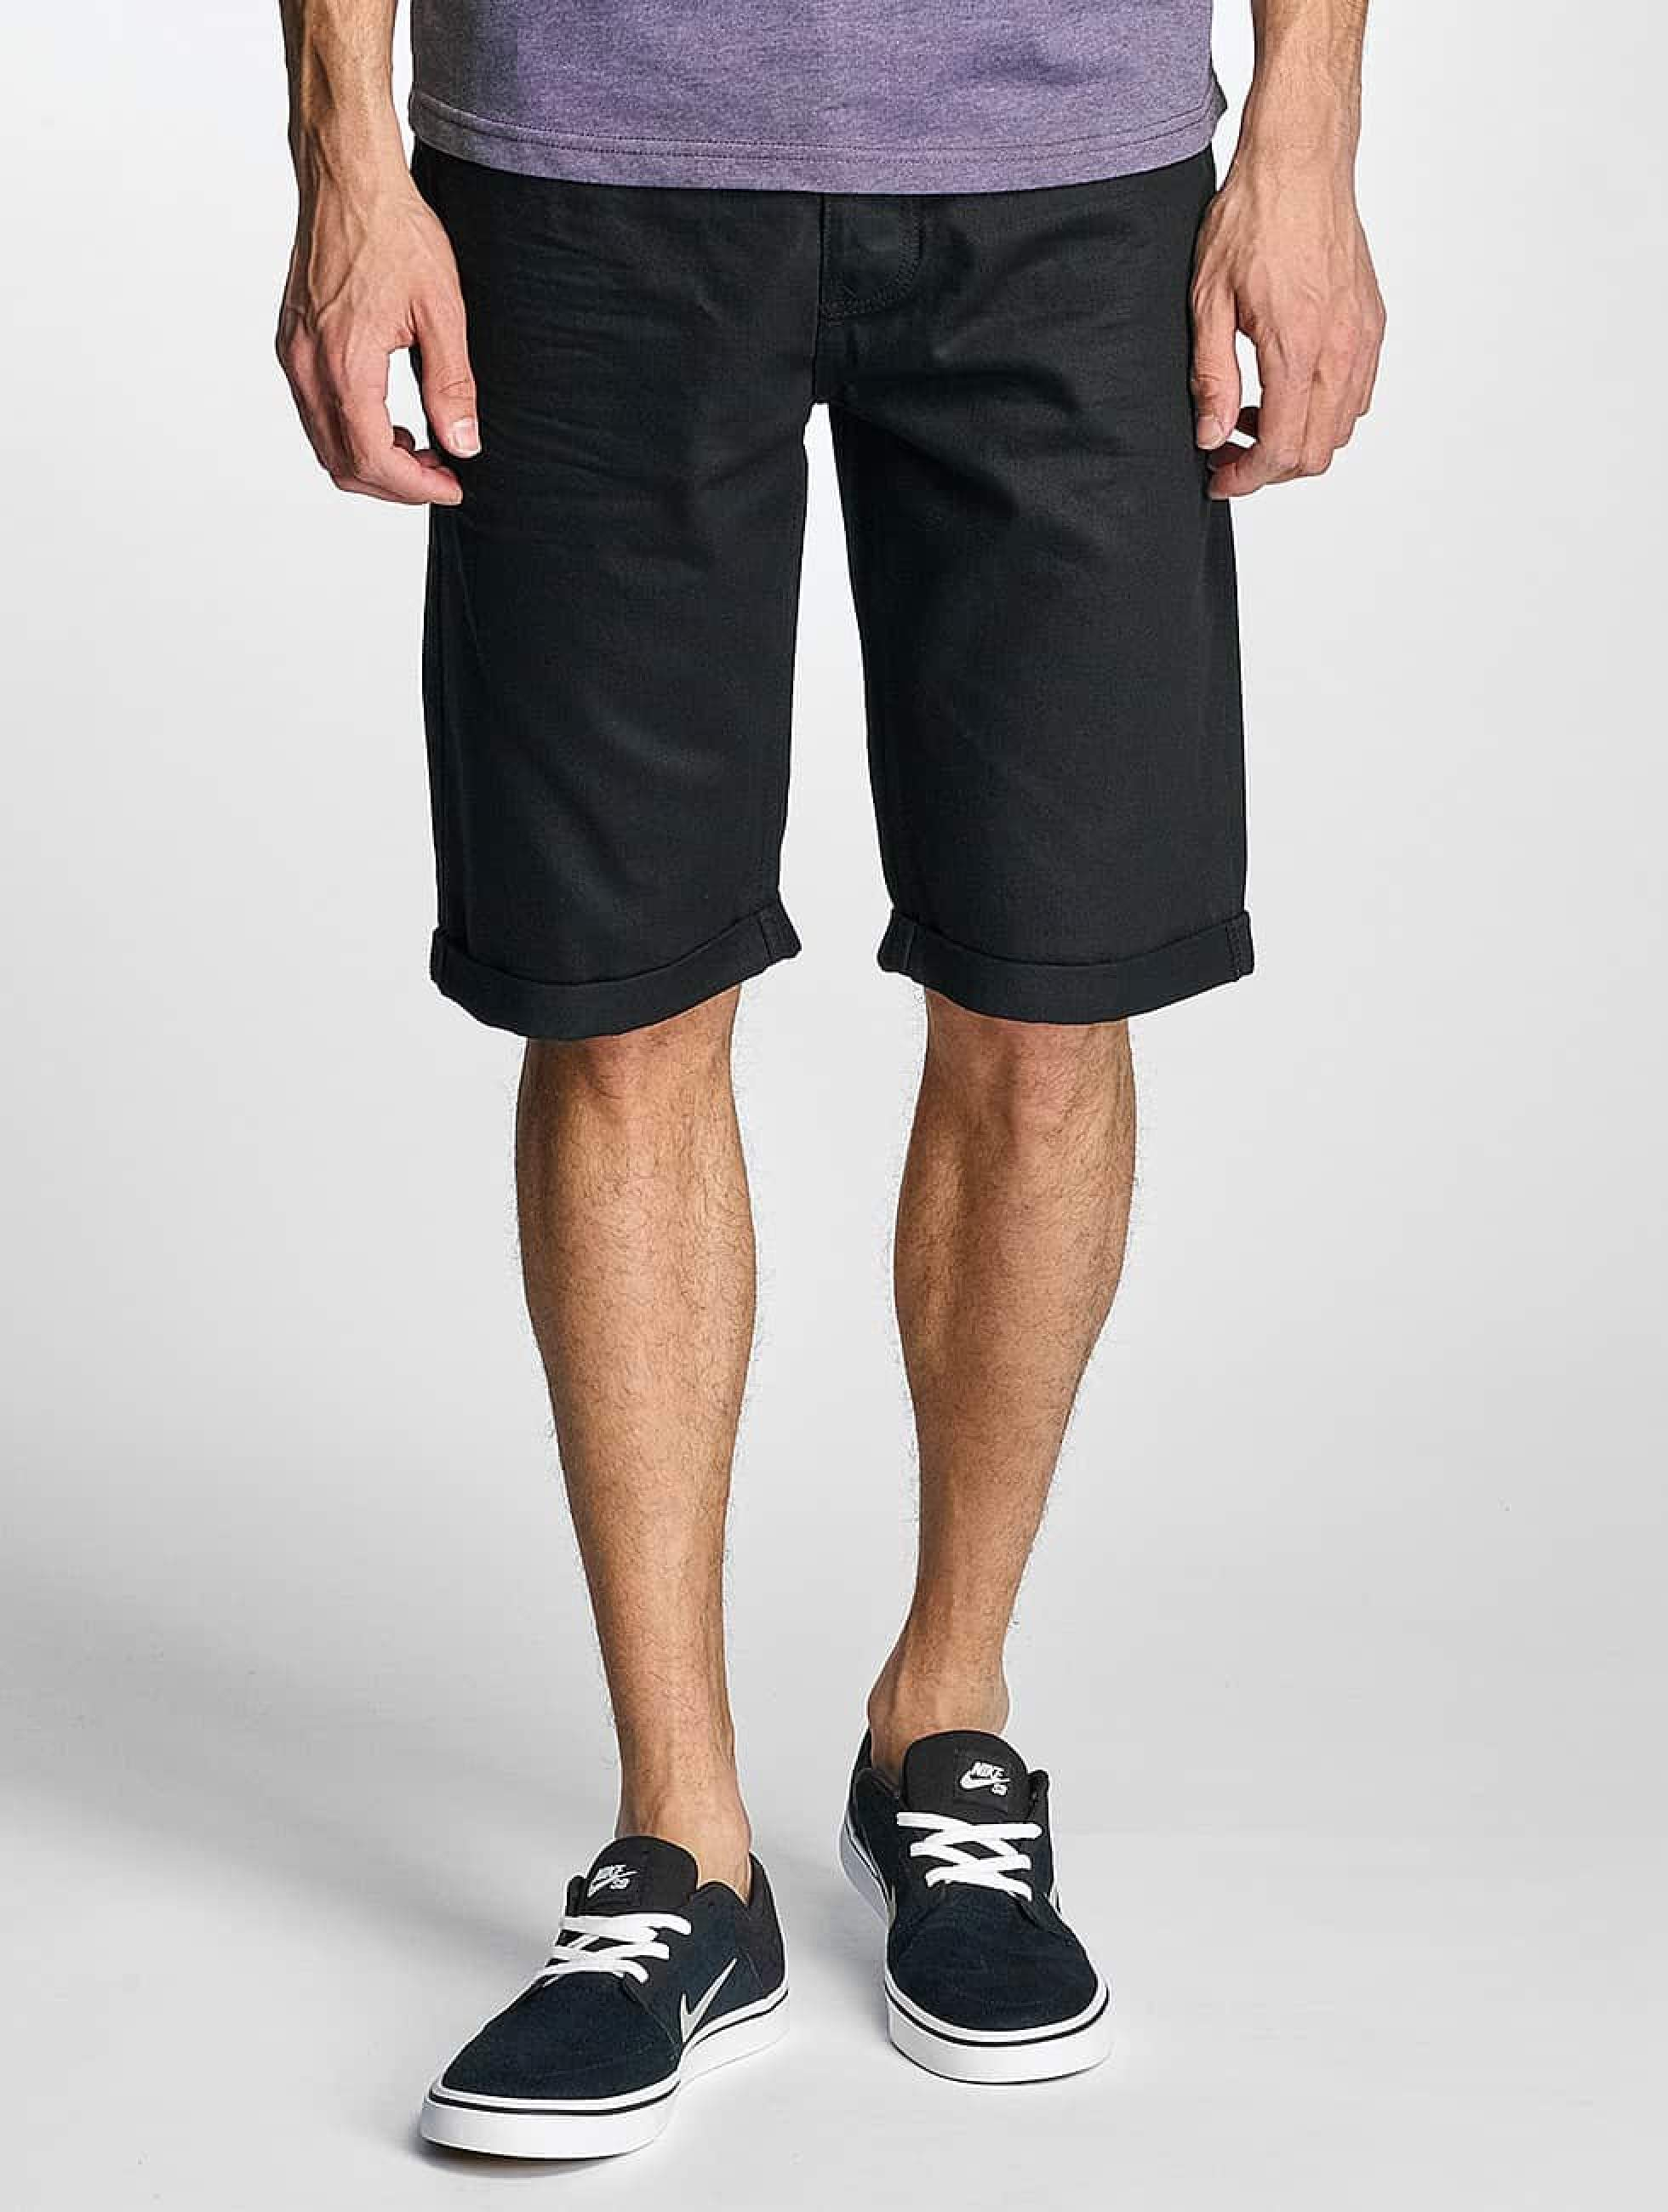 Just Rhyse / Short Dakar in black S